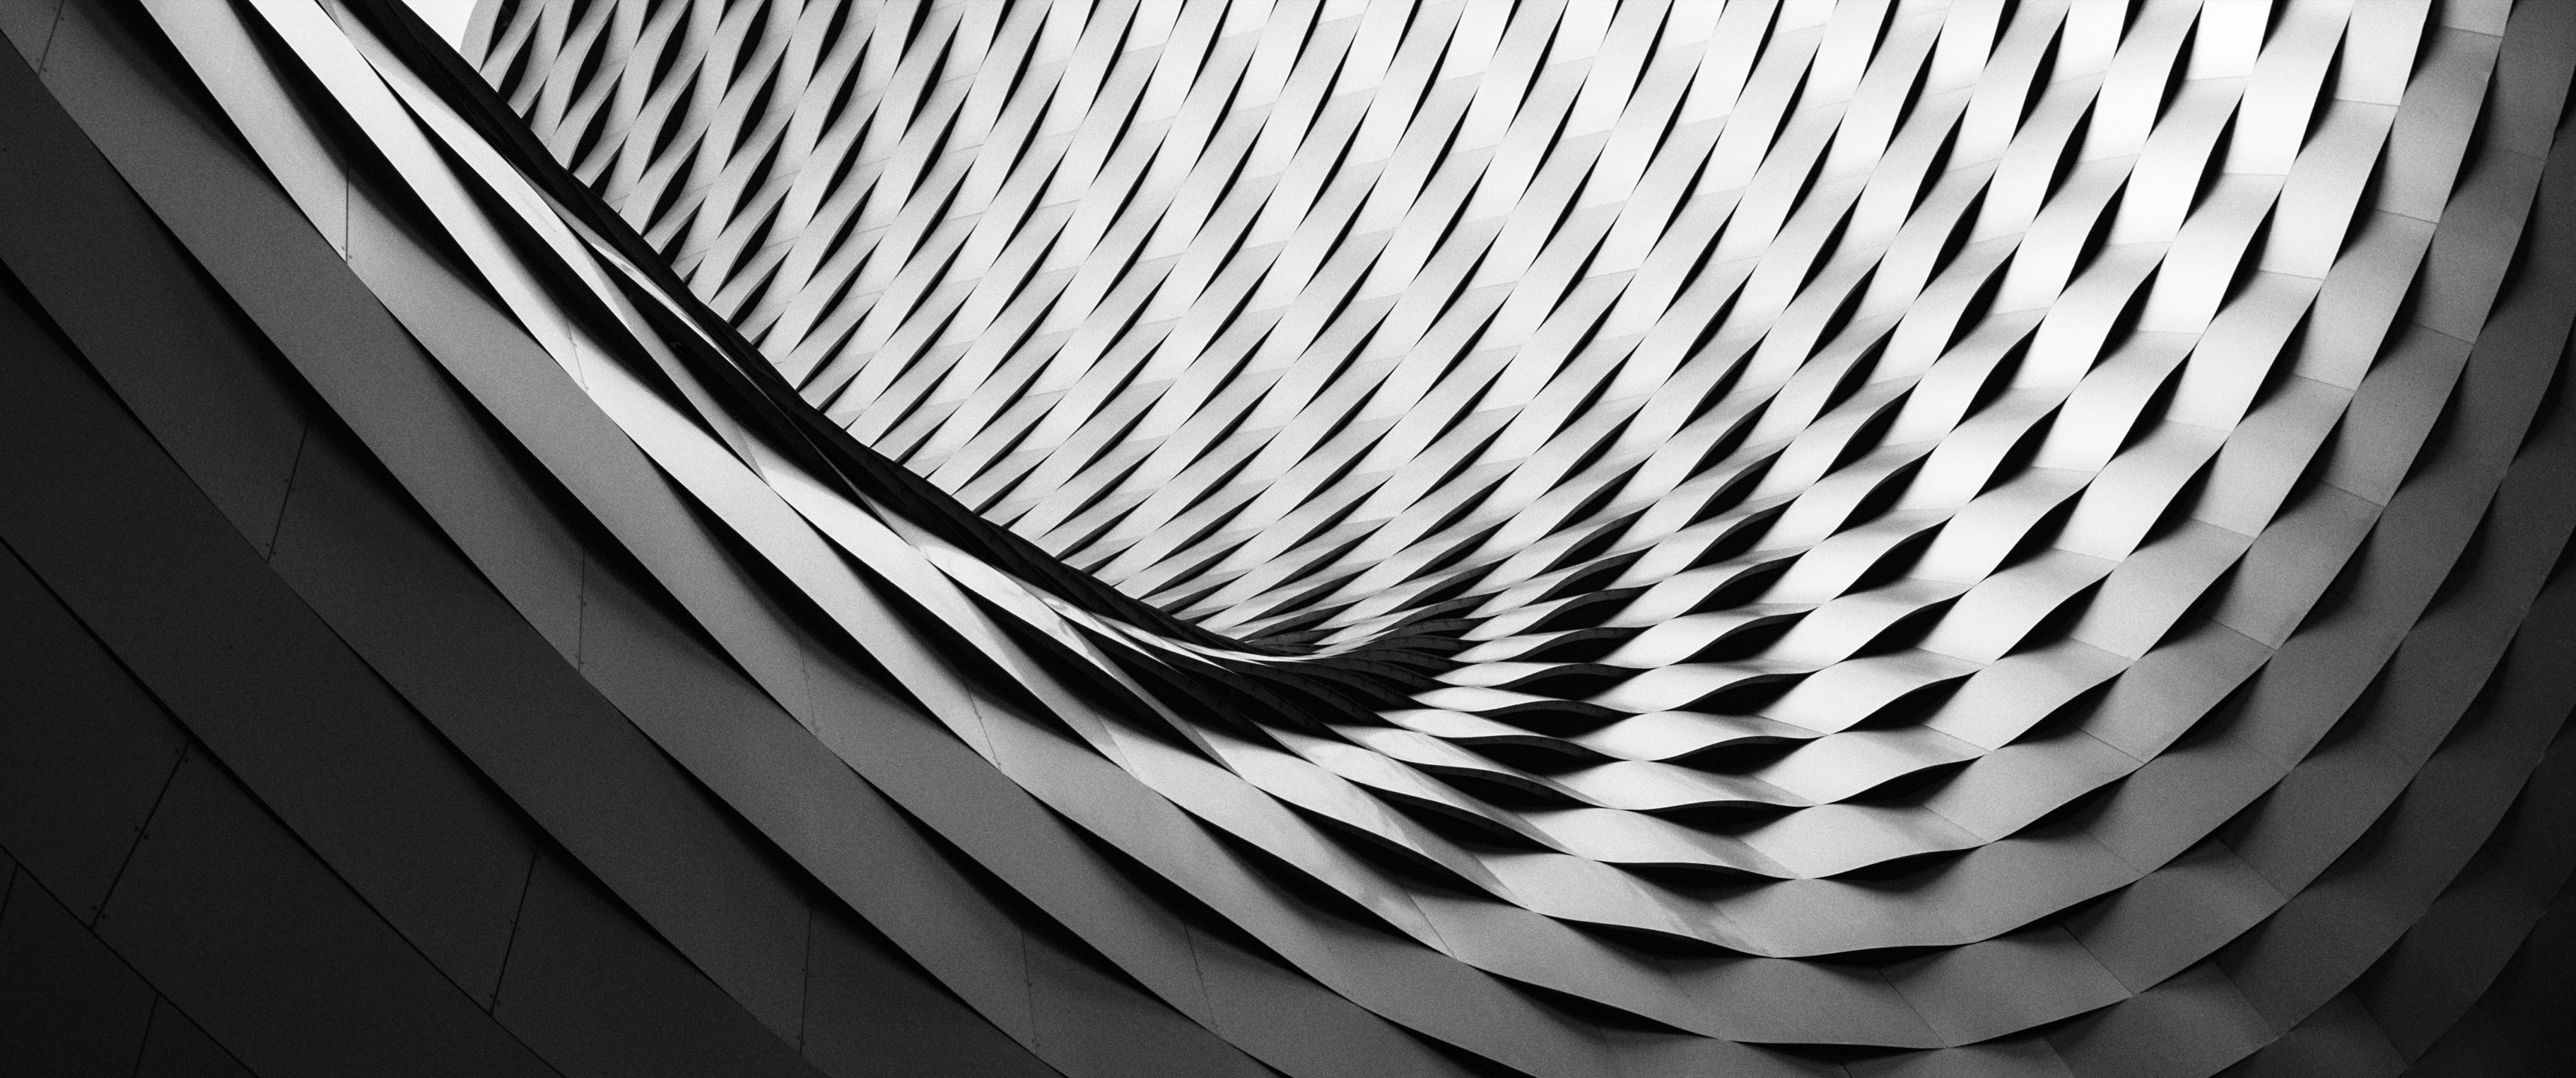 Architectural Spiral 21 9 Wallpaper Ultrawide Monitor 21